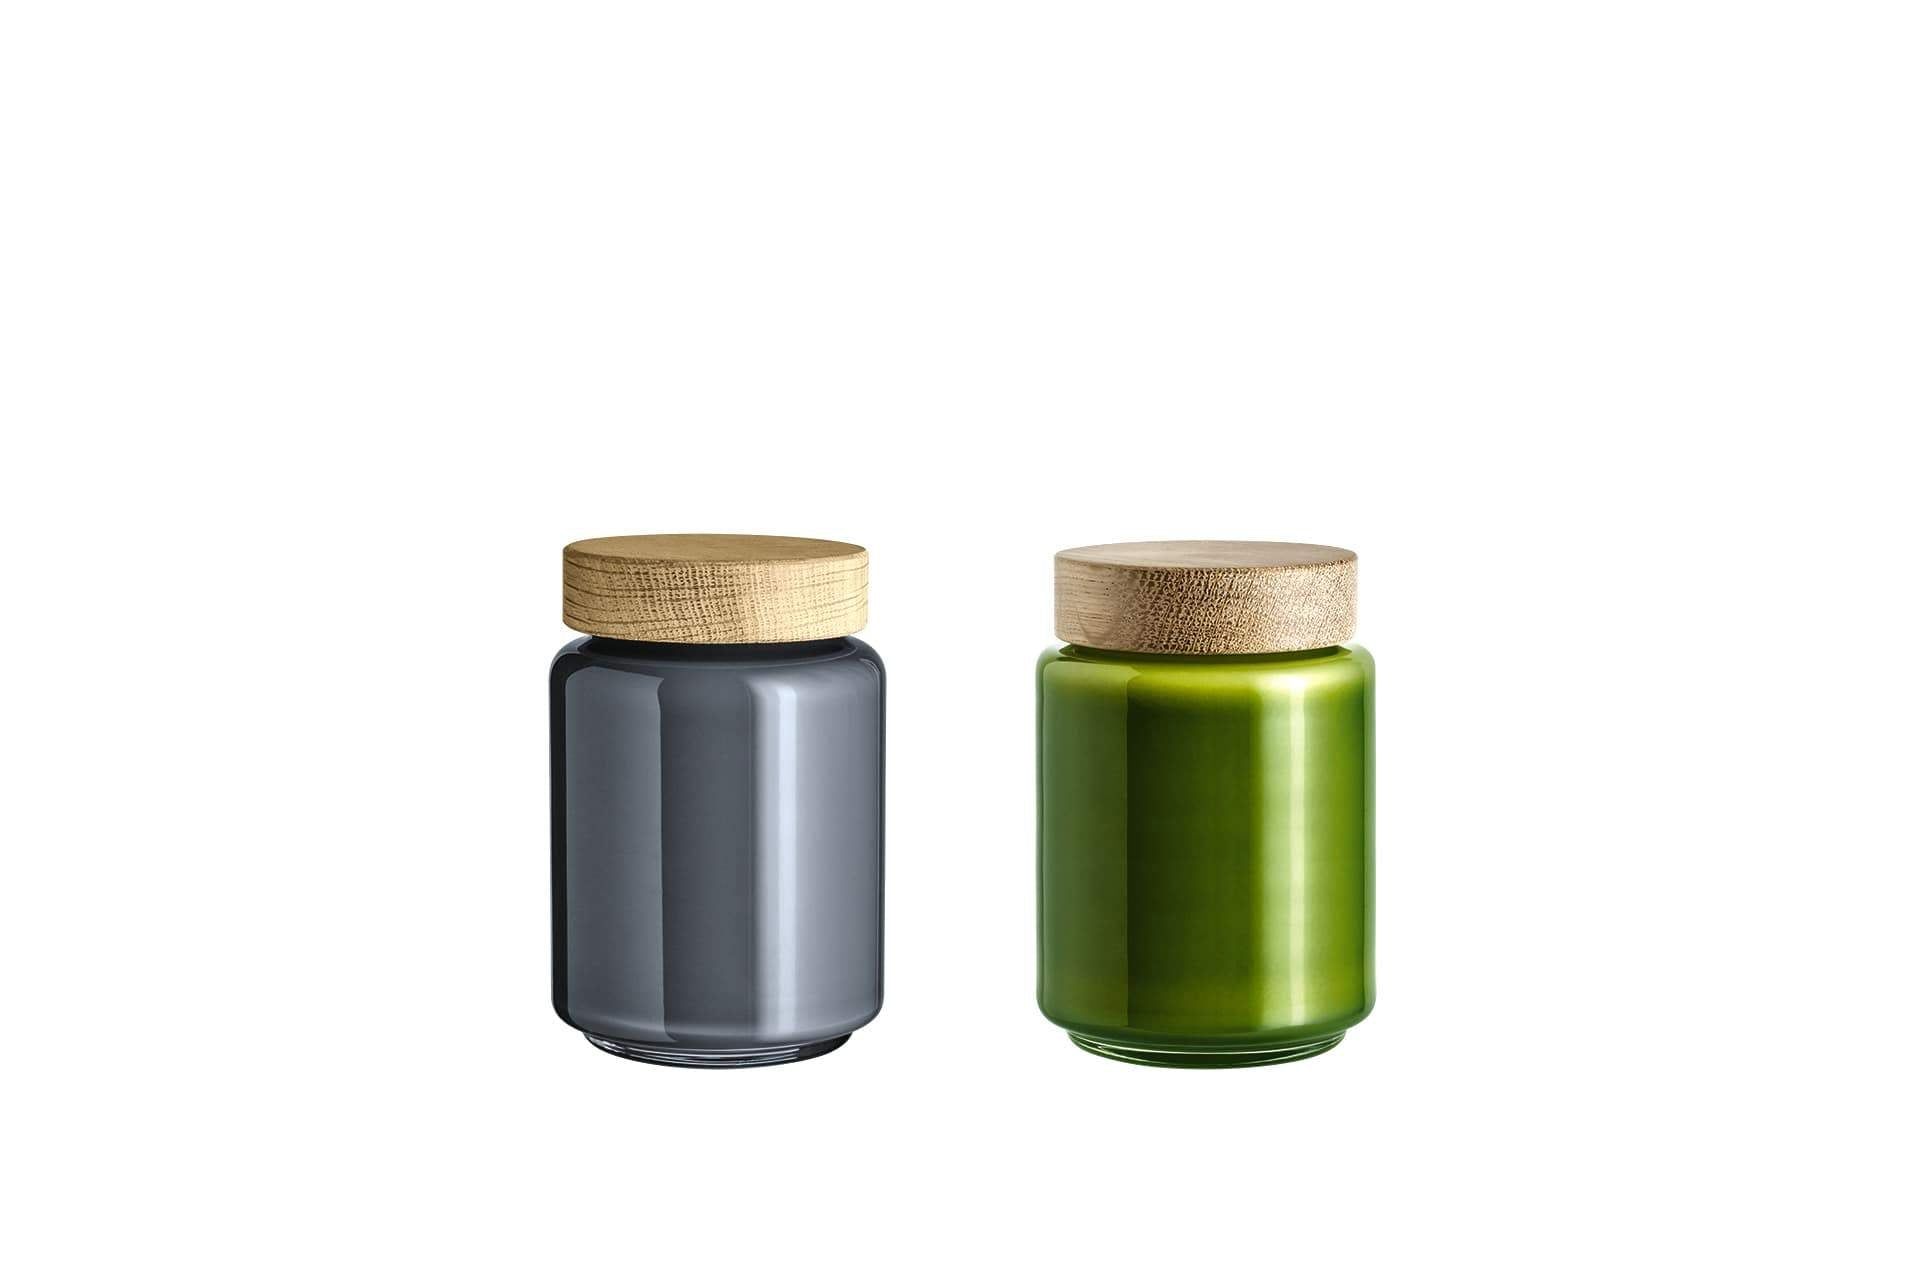 Bocal verre soufflé 0.7L PALET JAR by Holmegaard-PARIDEO design durable